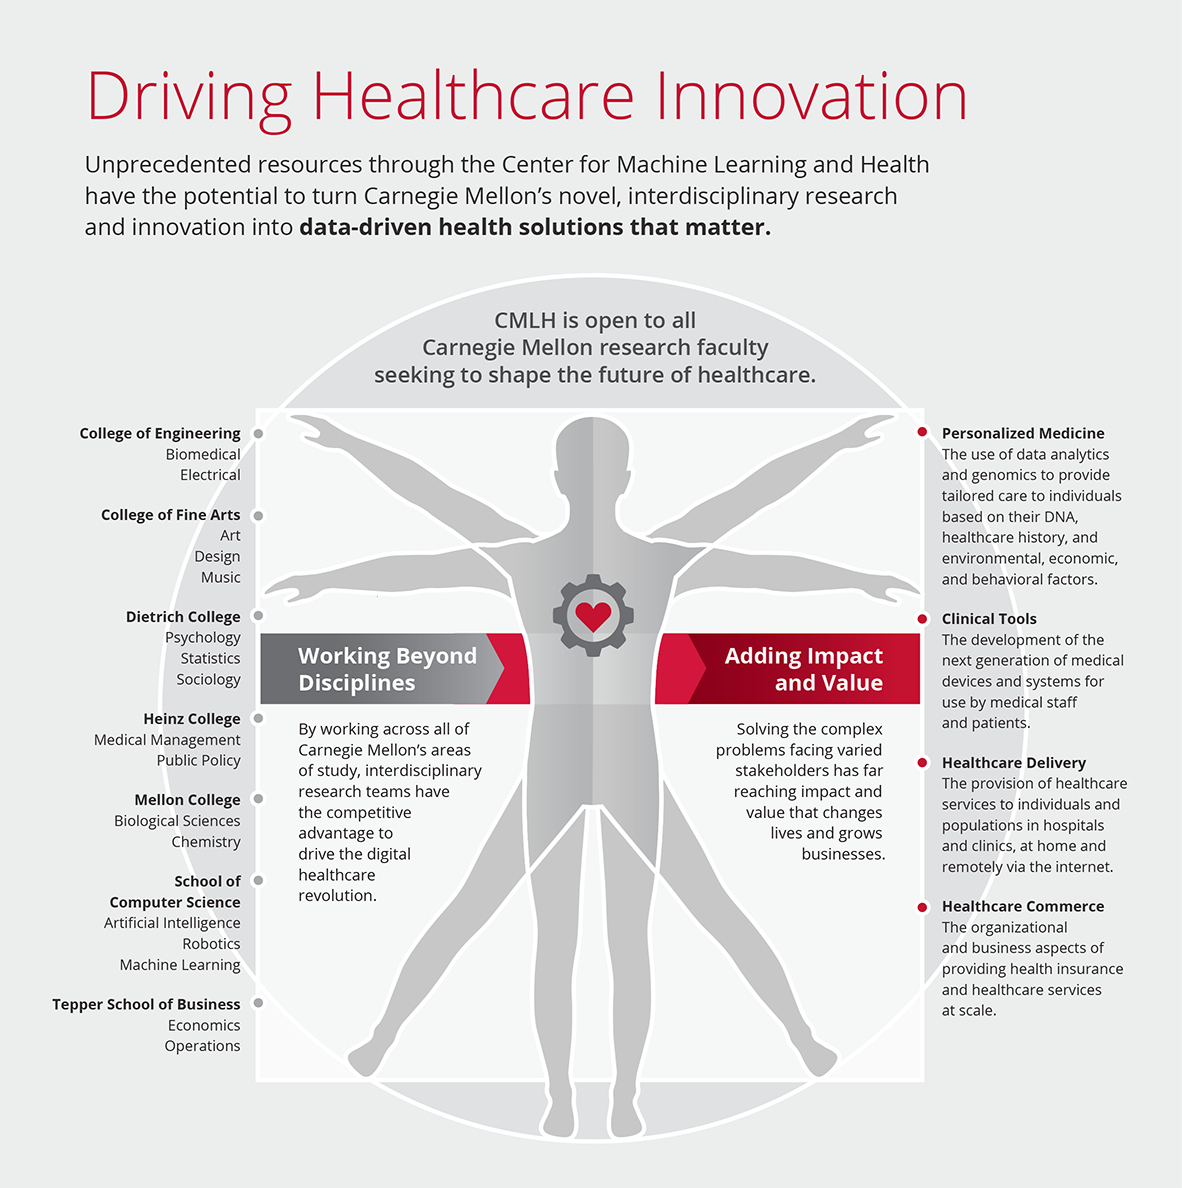 Driving Healthcare Innovation - Unprecedented resources through the Center for Machine Learning and Health have the potential to turn Carnegie Mellon's novel, interdisciplinary research and innovation into data-driven health solutions that matter.